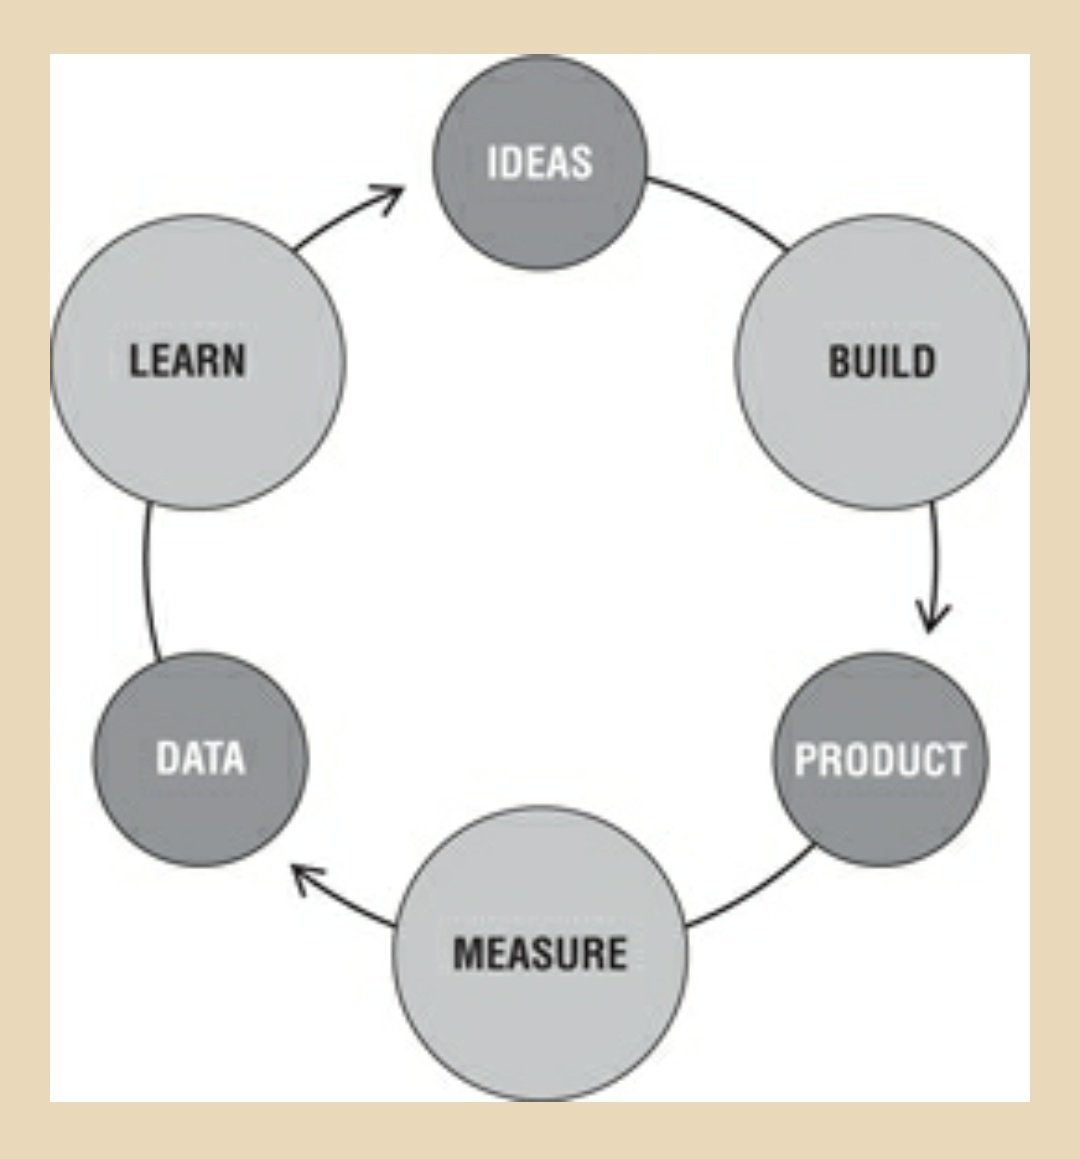 Build-Measure-Learn #LeanStartup <br>http://pic.twitter.com/oXS8gL4IAG